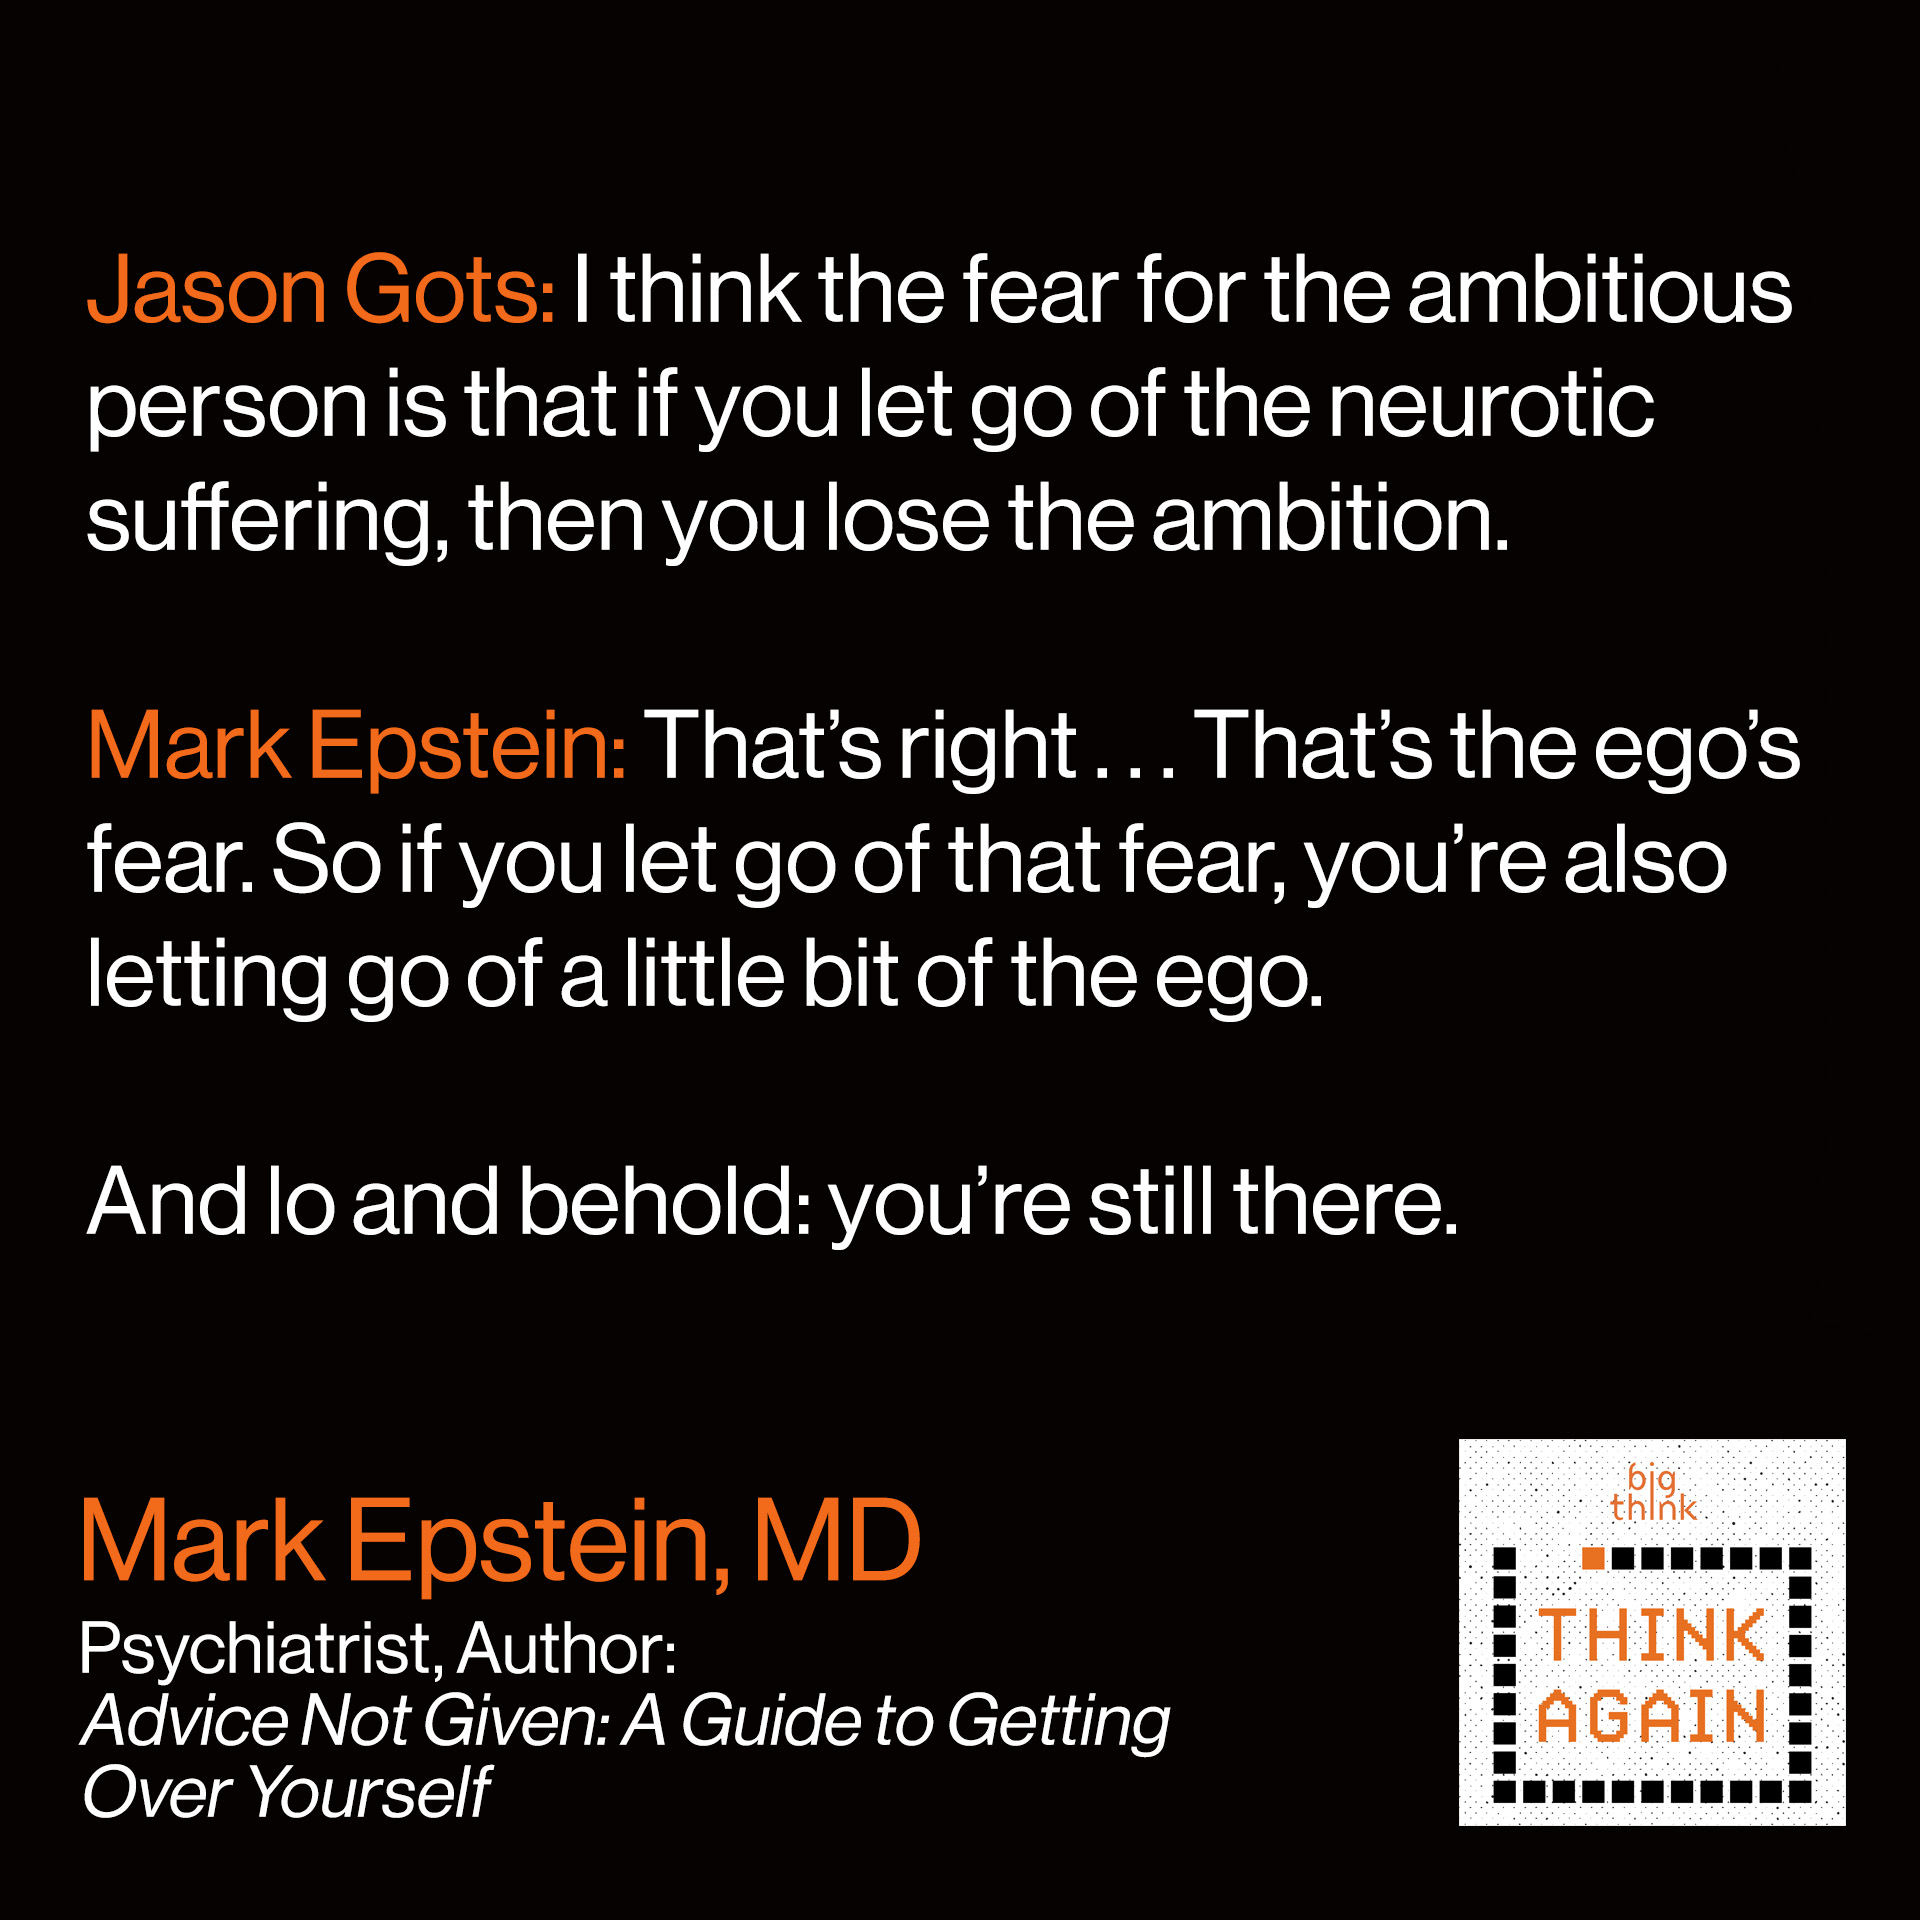 Mark Epstein Quote: JG: I think the fear for the ambitious person is that if you let go of the neurotic suffering, then you lose the ambition.   ME: That's right . . . That's the ego's fear. So if you let go of that fear you're also letting go of a little bit of the ego.   And lo and behold: you're still there.